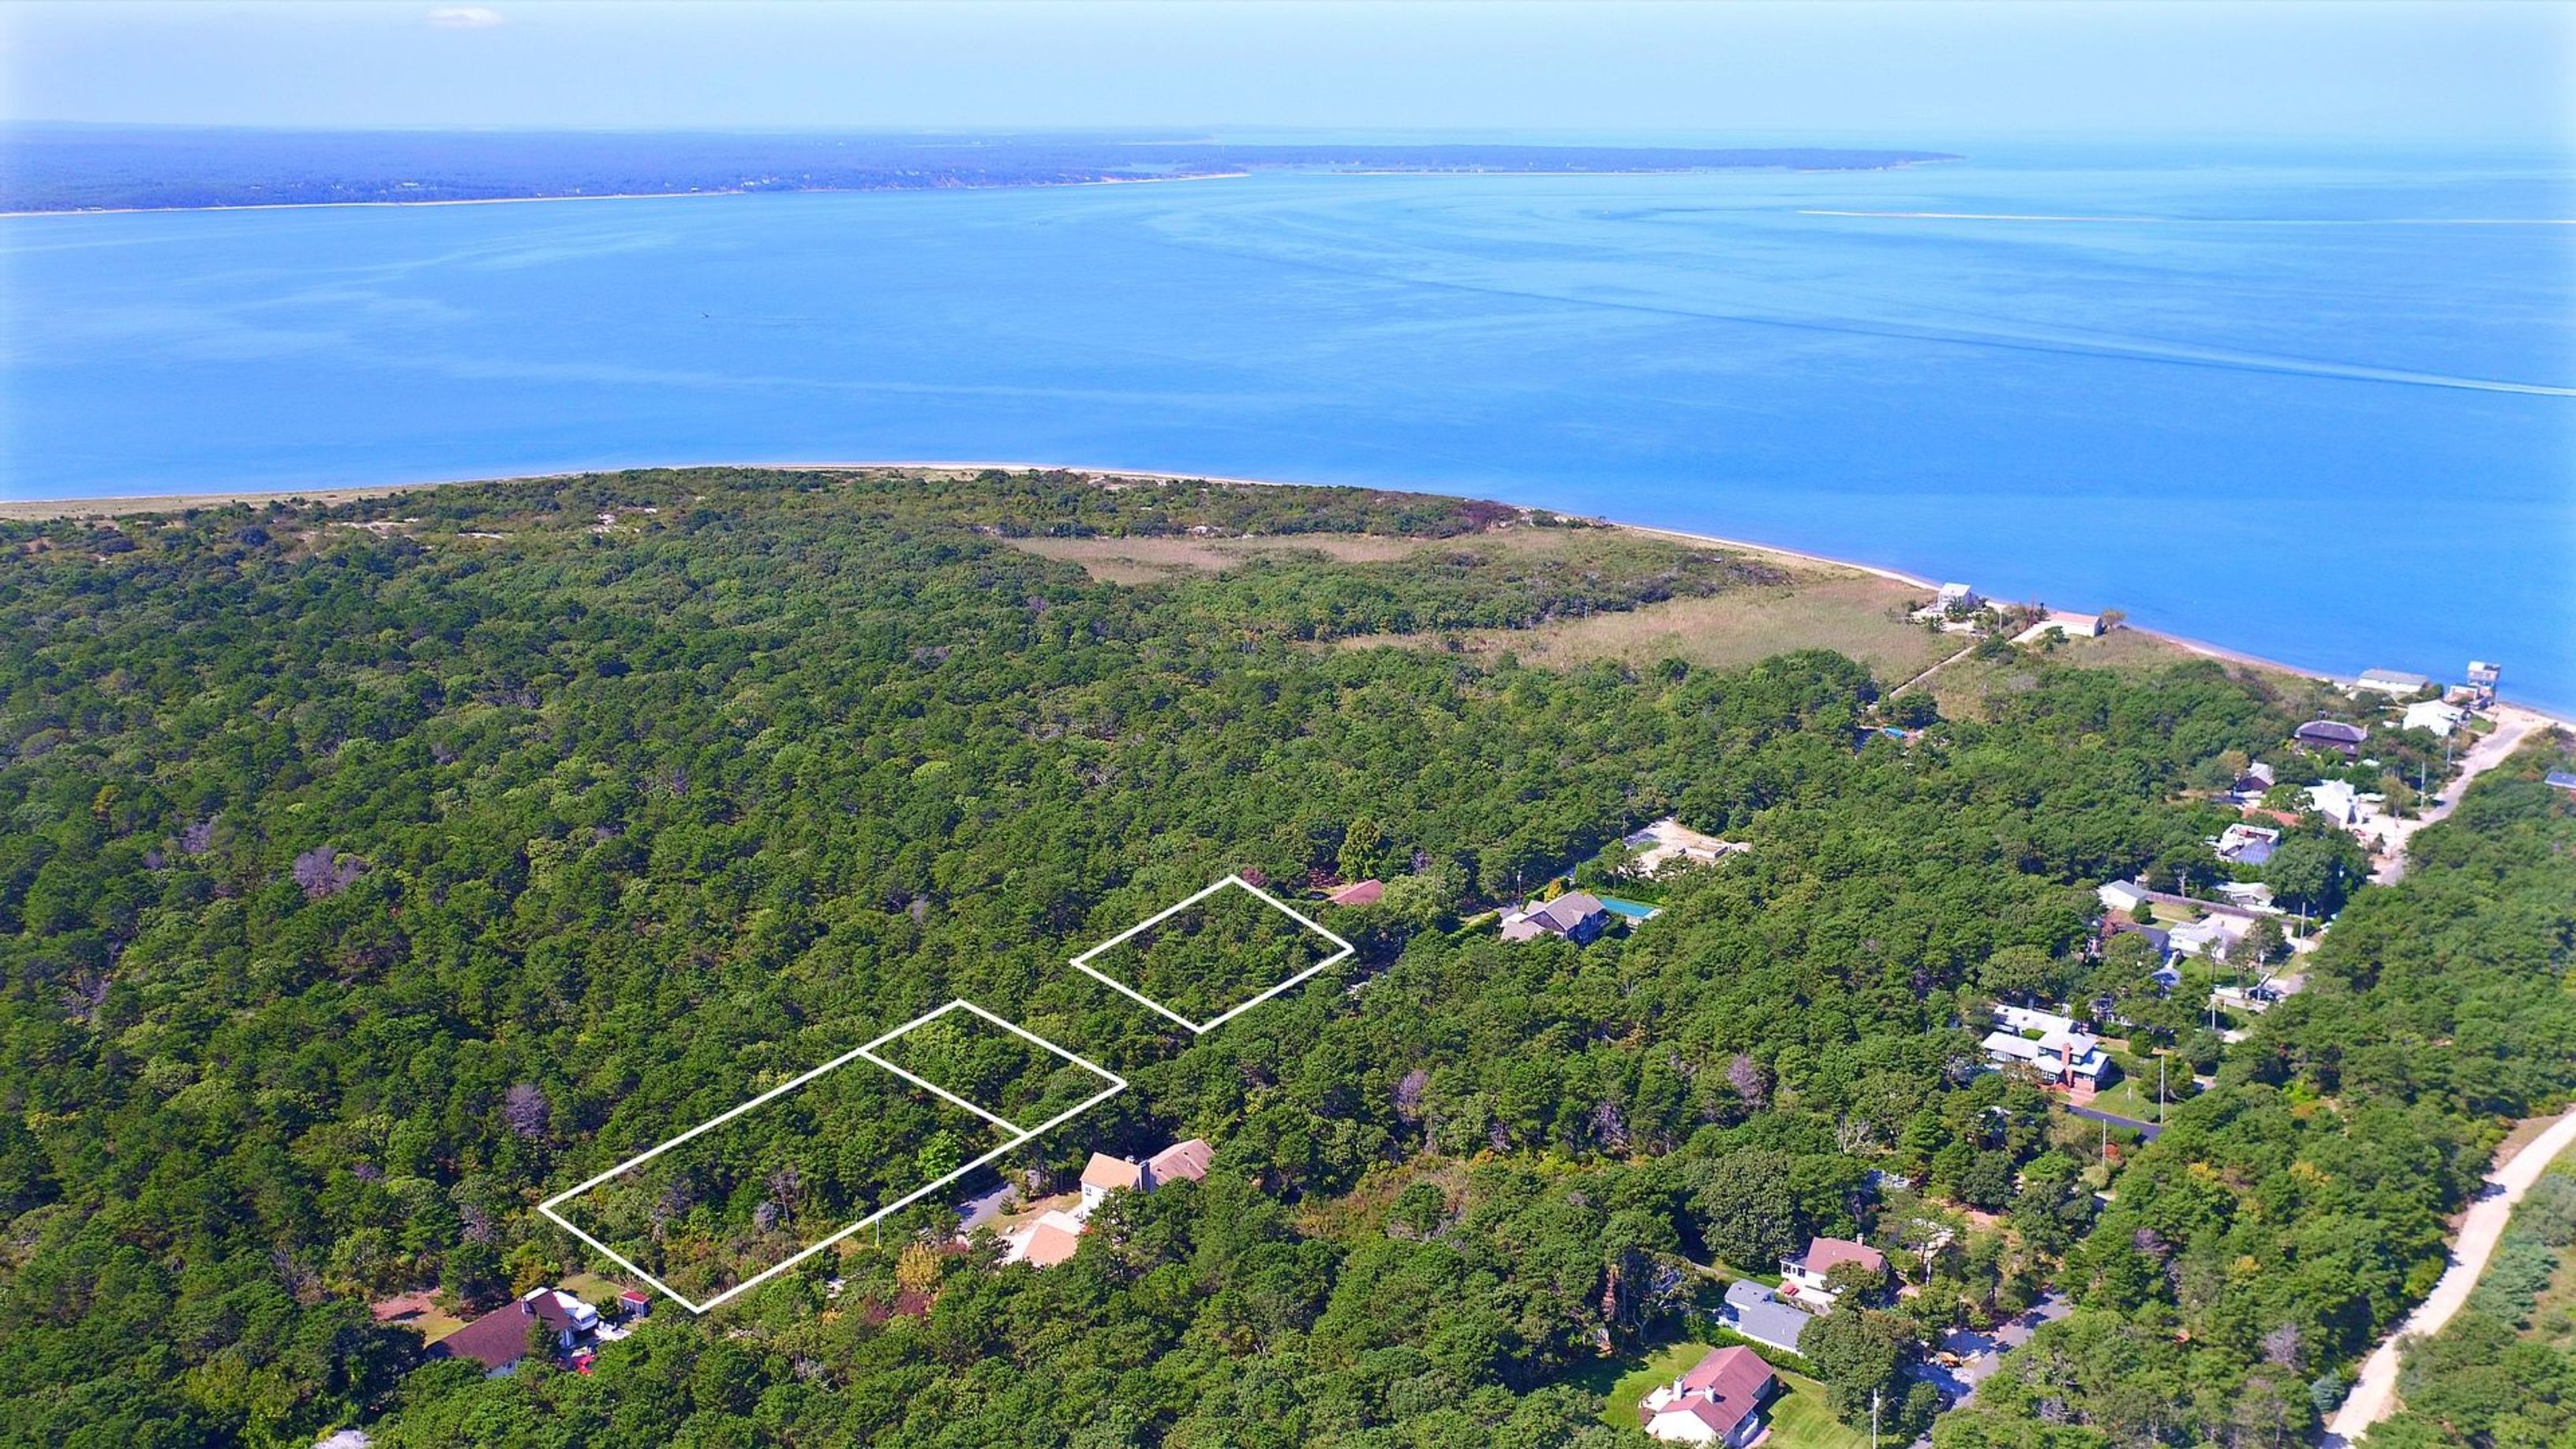 55 & 39, 47 Bay View Ave - Amagansett North, New York